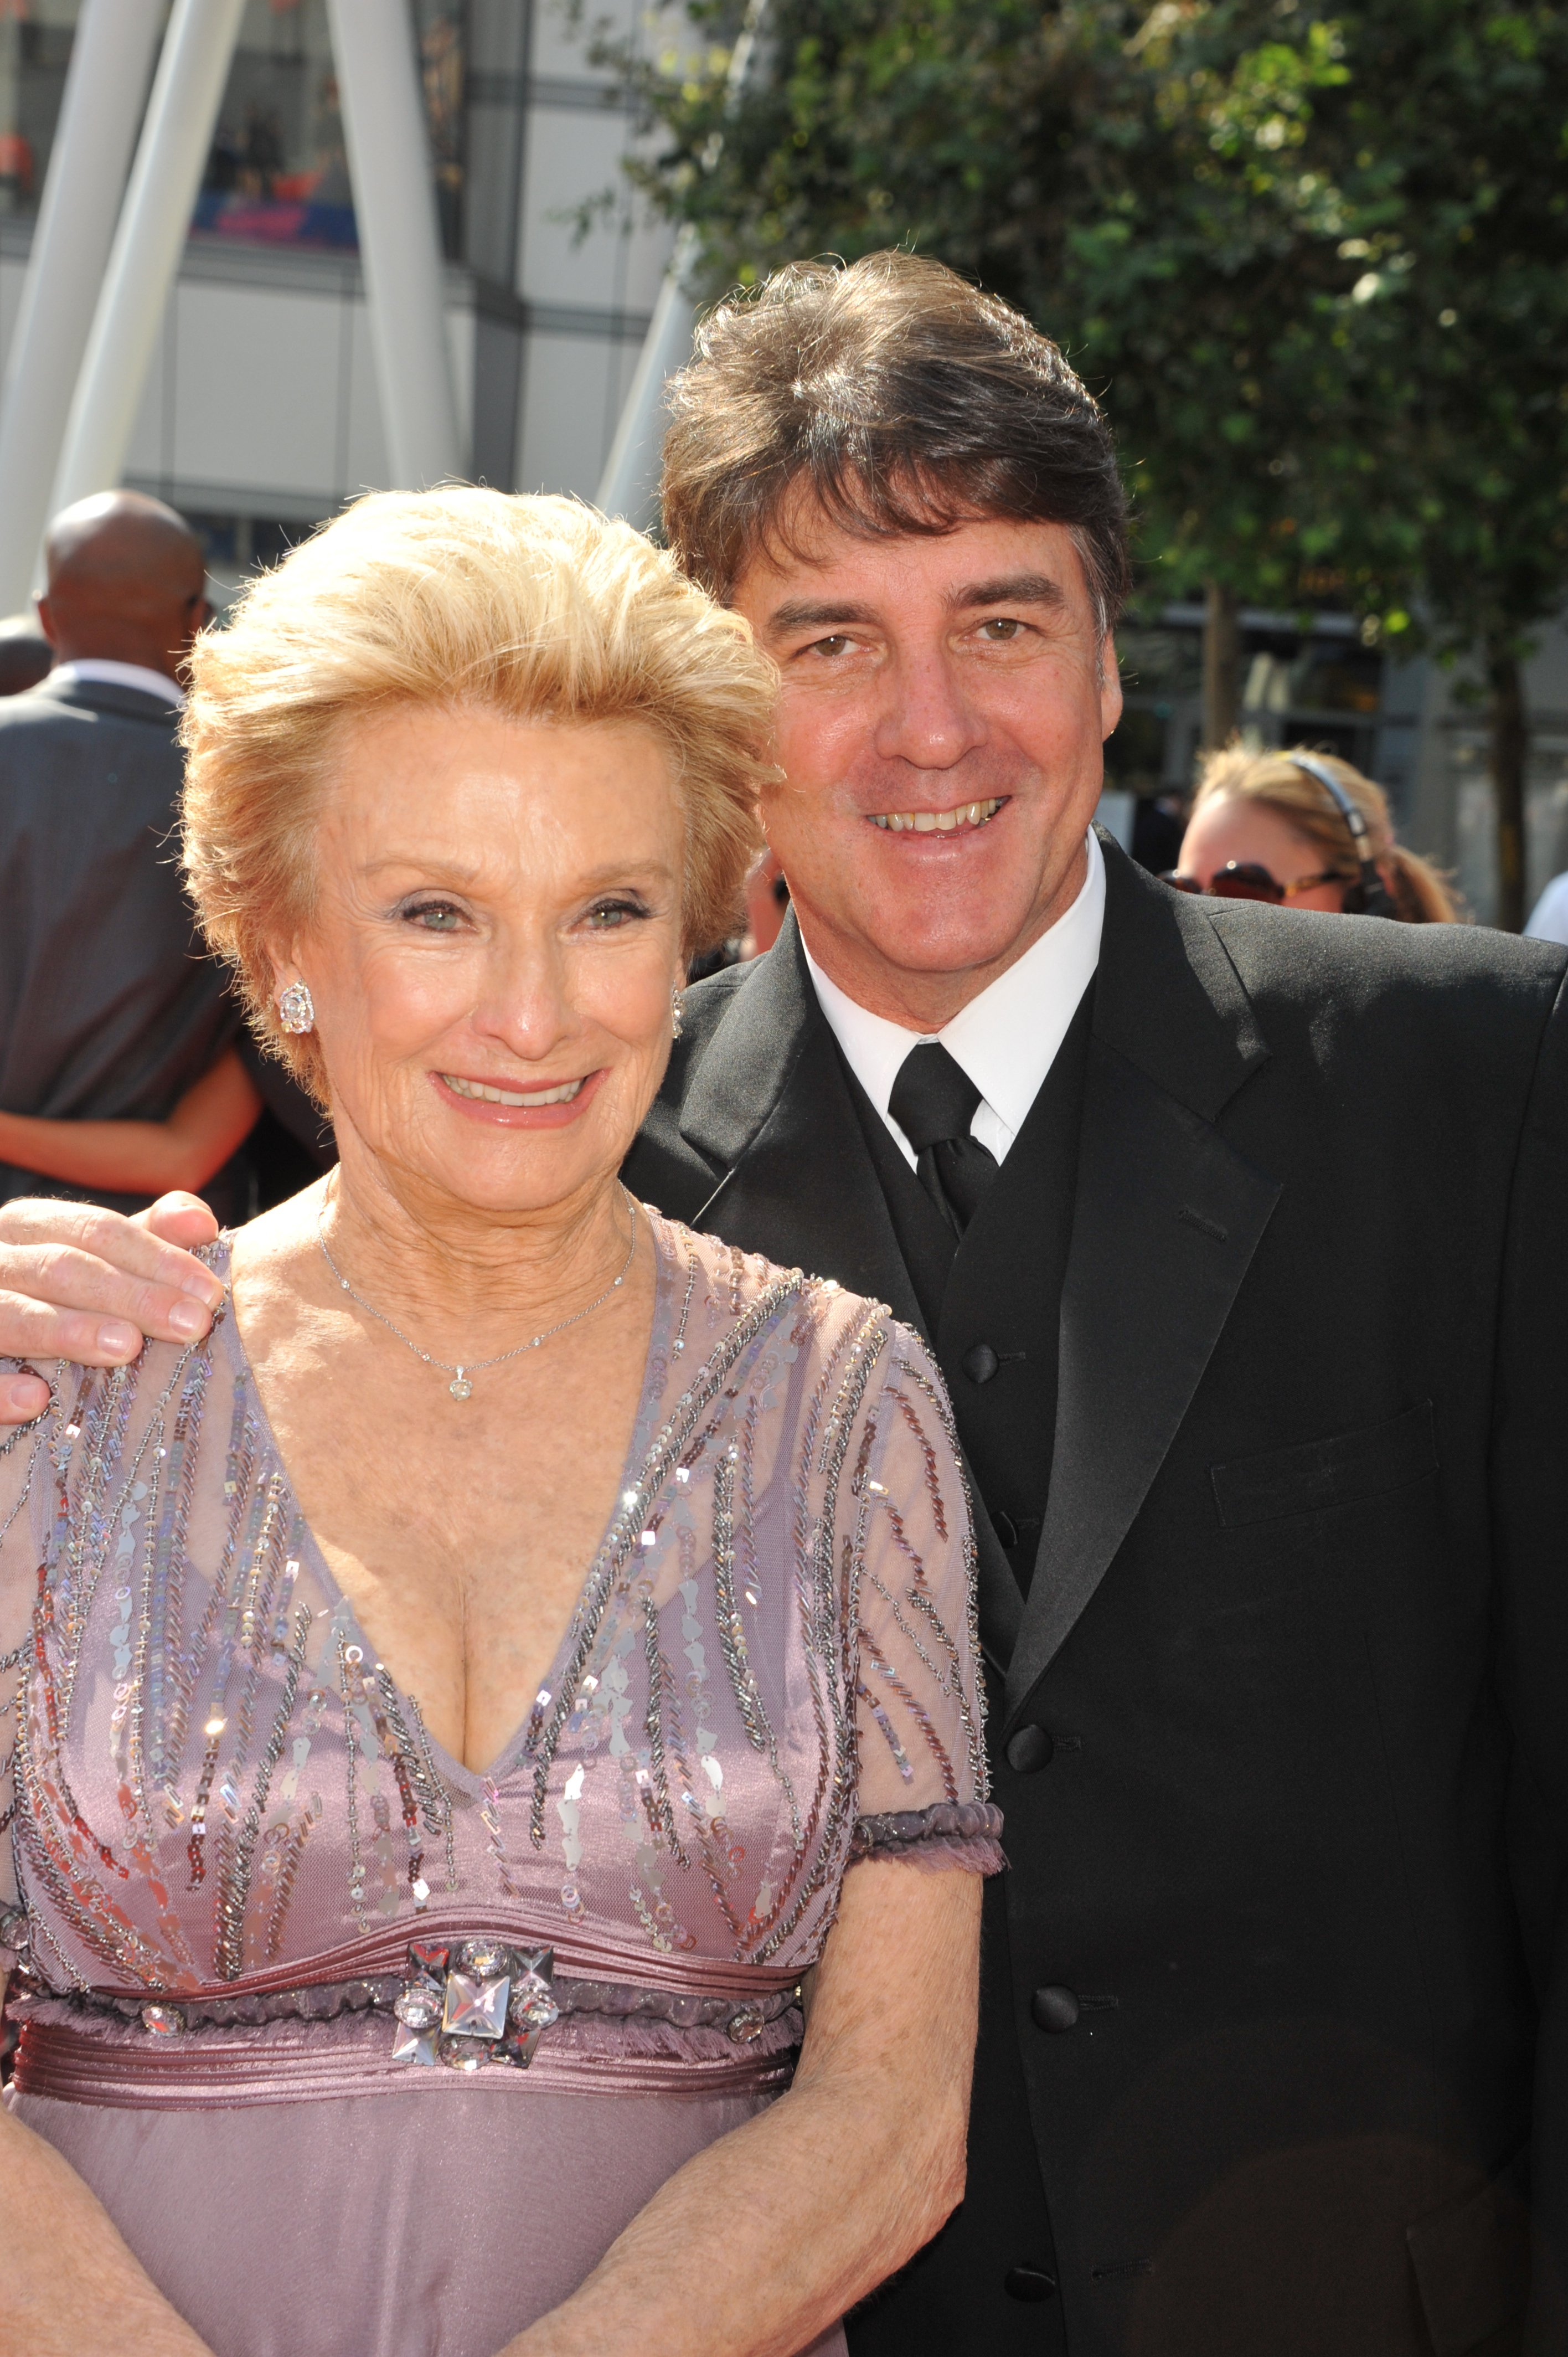 Cloris Leachman and son George Englund arrive at the Primetime Creative Arts Emmy Awards at the Nokia Theater L.A. Live in 2011 | Photo: Getty Images